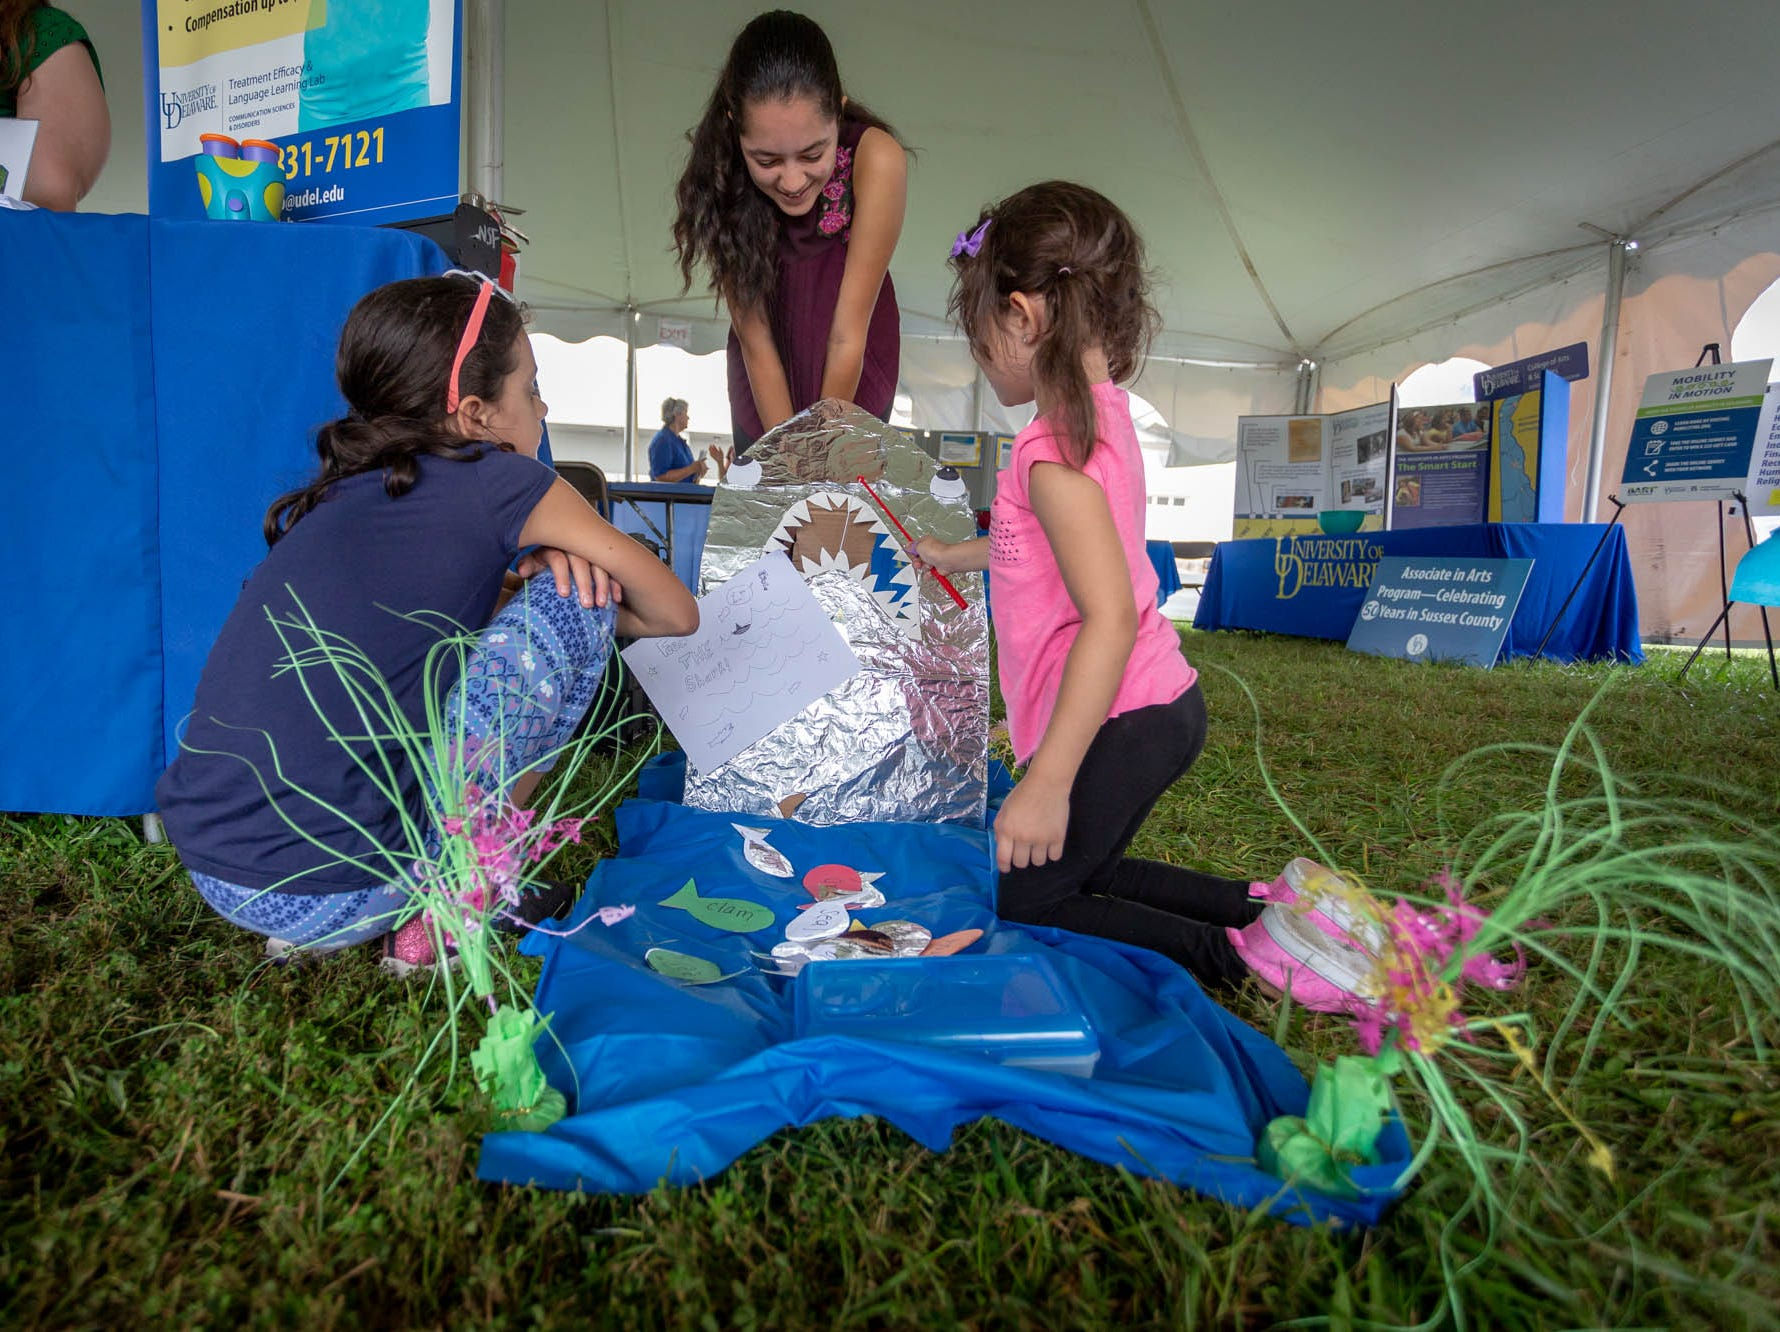 Coast Day showcases how University of Delaware scientists, staff, and students are improving our understanding of ocean environments and serve coastal communities.